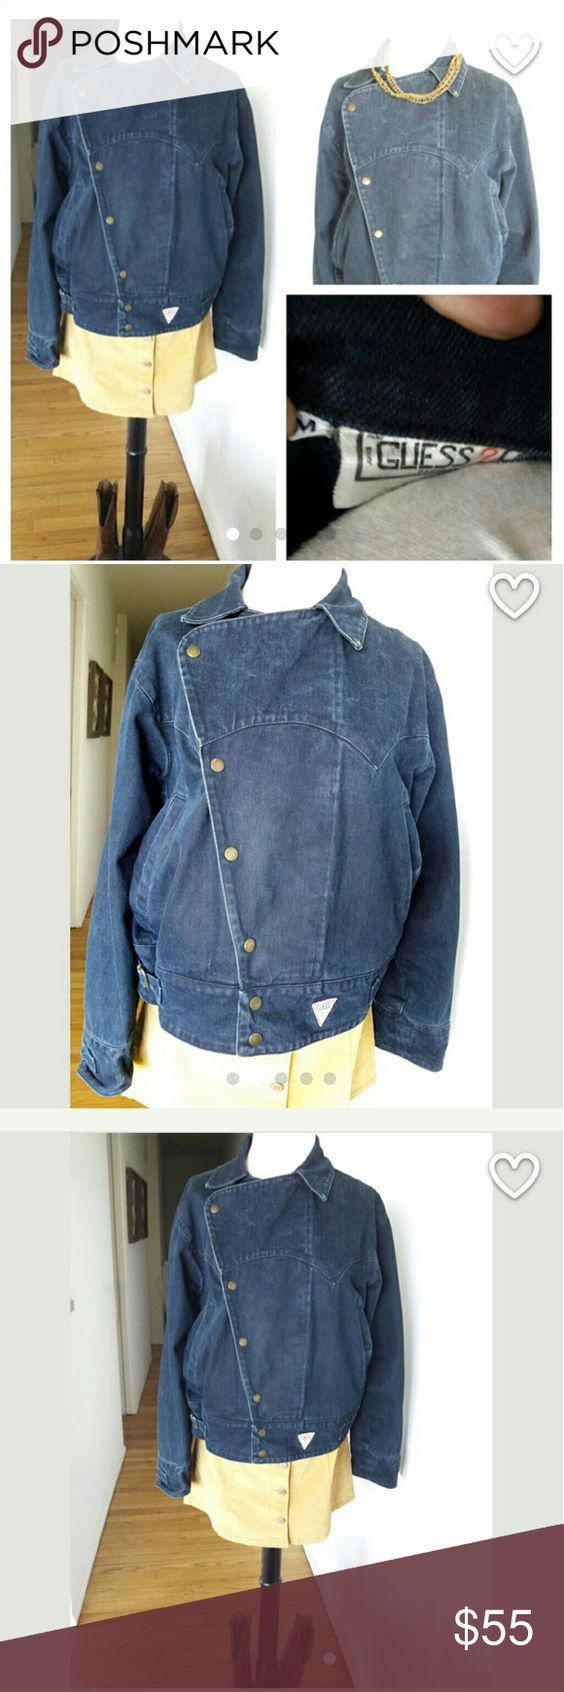 """GUESS Vintage Paris Denim Button up jacket Item details Authentic 90's GUESS Paris Denim Indigo jacket. Dark colored wrap button up jacket. Features 2 front pockets, side ties to adjust tighter or looser. In good condition, all buttons intact,no stains. Size Medium, but please see measurements below for proper fit.   Size: Medium Label Brand: Guess Paris Material: Denim Length: 24.5 """" Inches Across: 19"""" Inches Urban Outfitters Jackets & Coats Jean Jackets"""